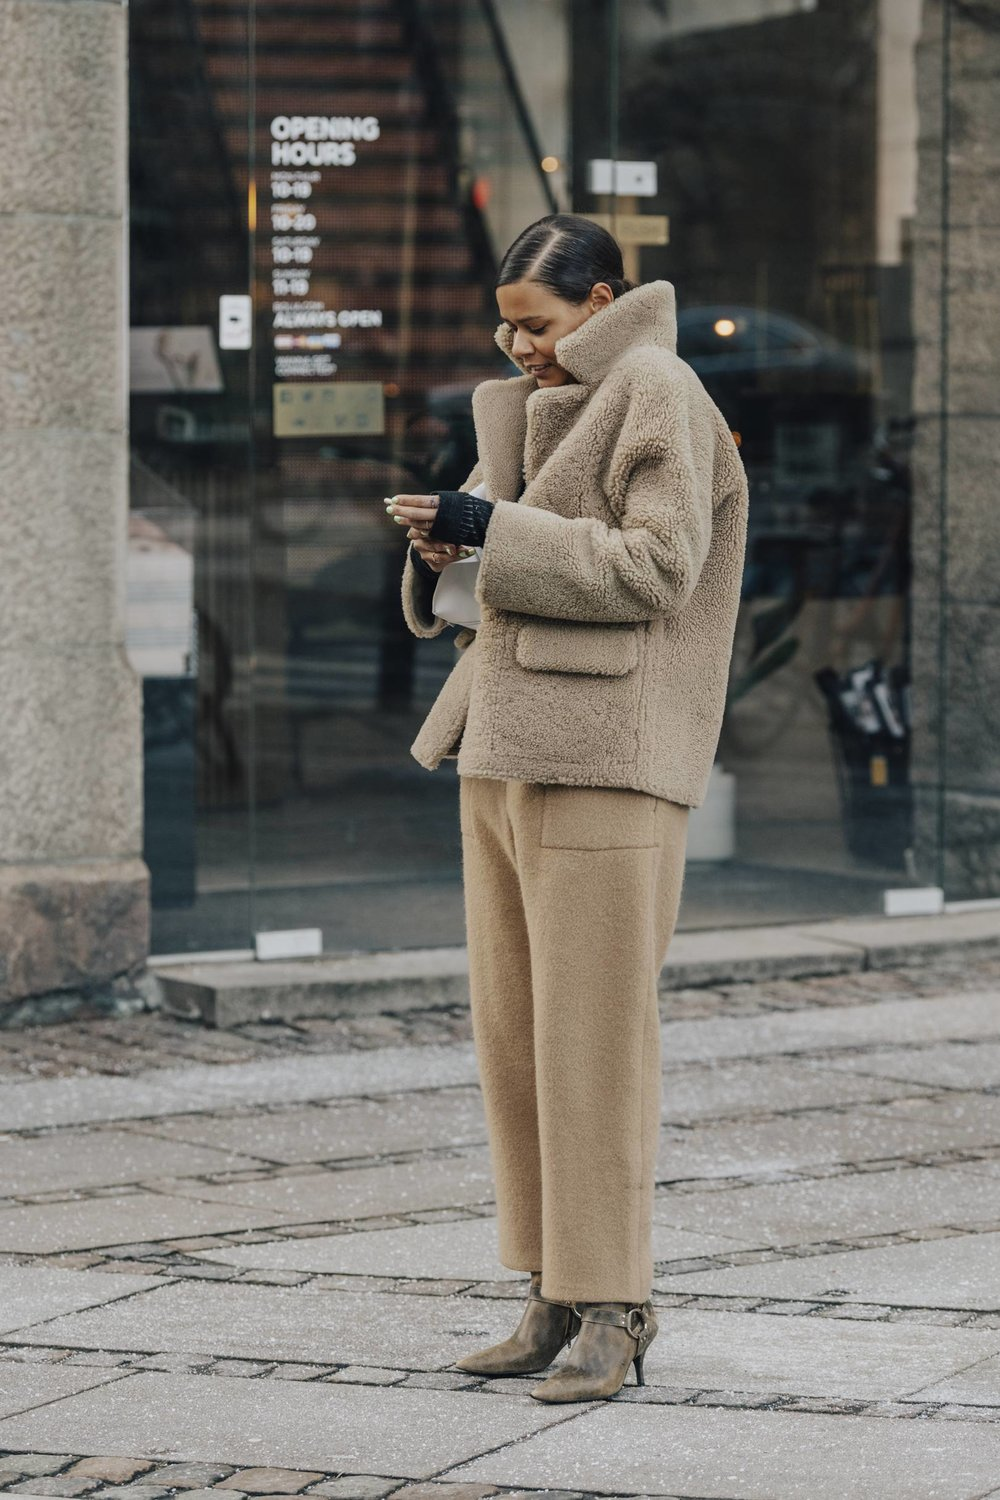 The perfect head to toe NEUTRAL, wool trousers with the cropped teddy coat. So wearable and practical.